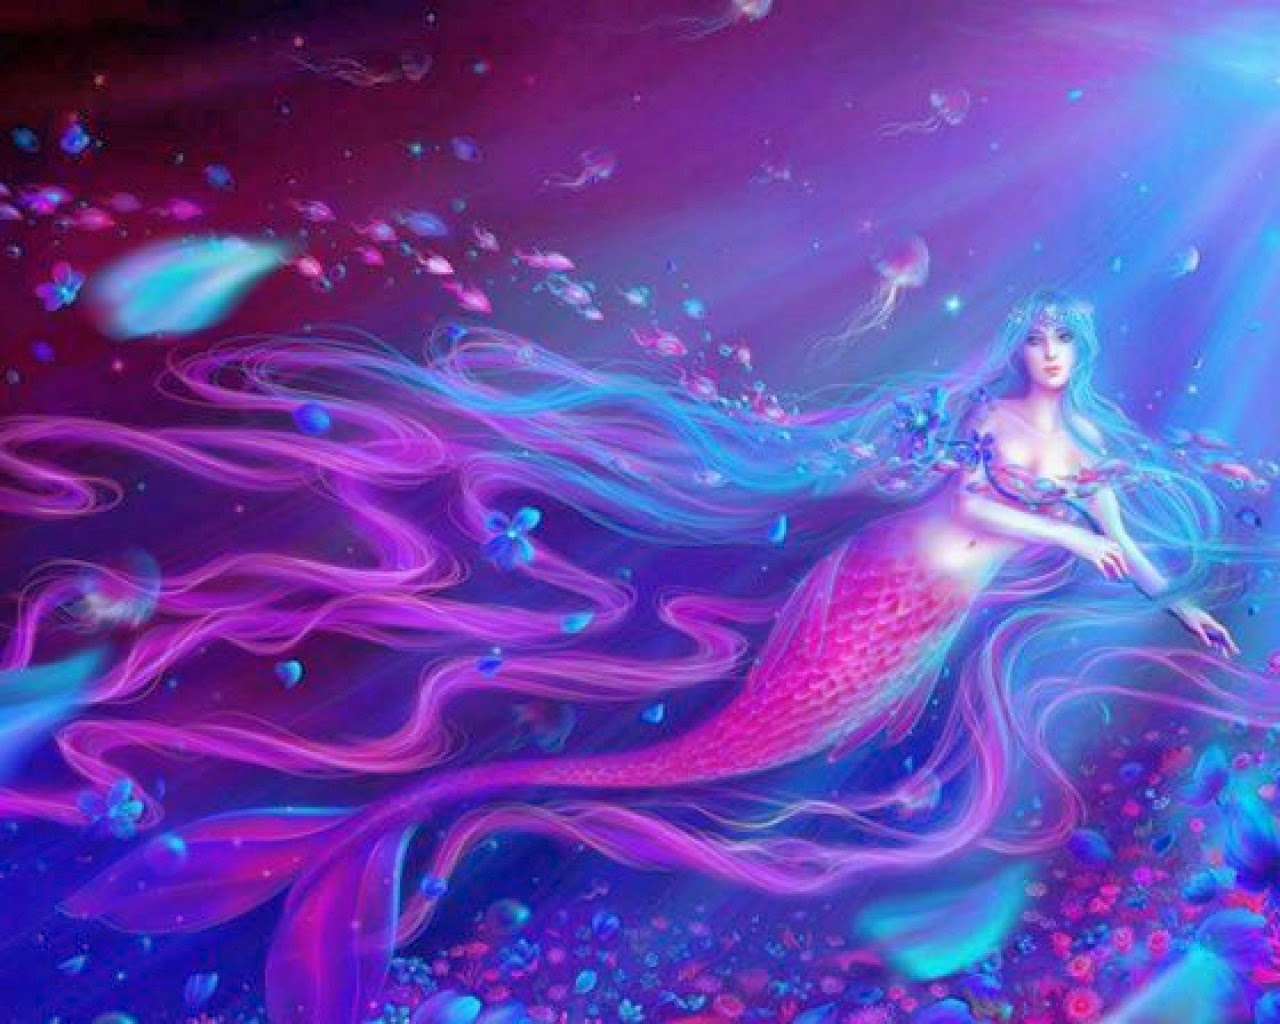 I Love Myself Quotes Wallpapers Most Beautiful Mermaid Girl Pictures Fantasy Graphics